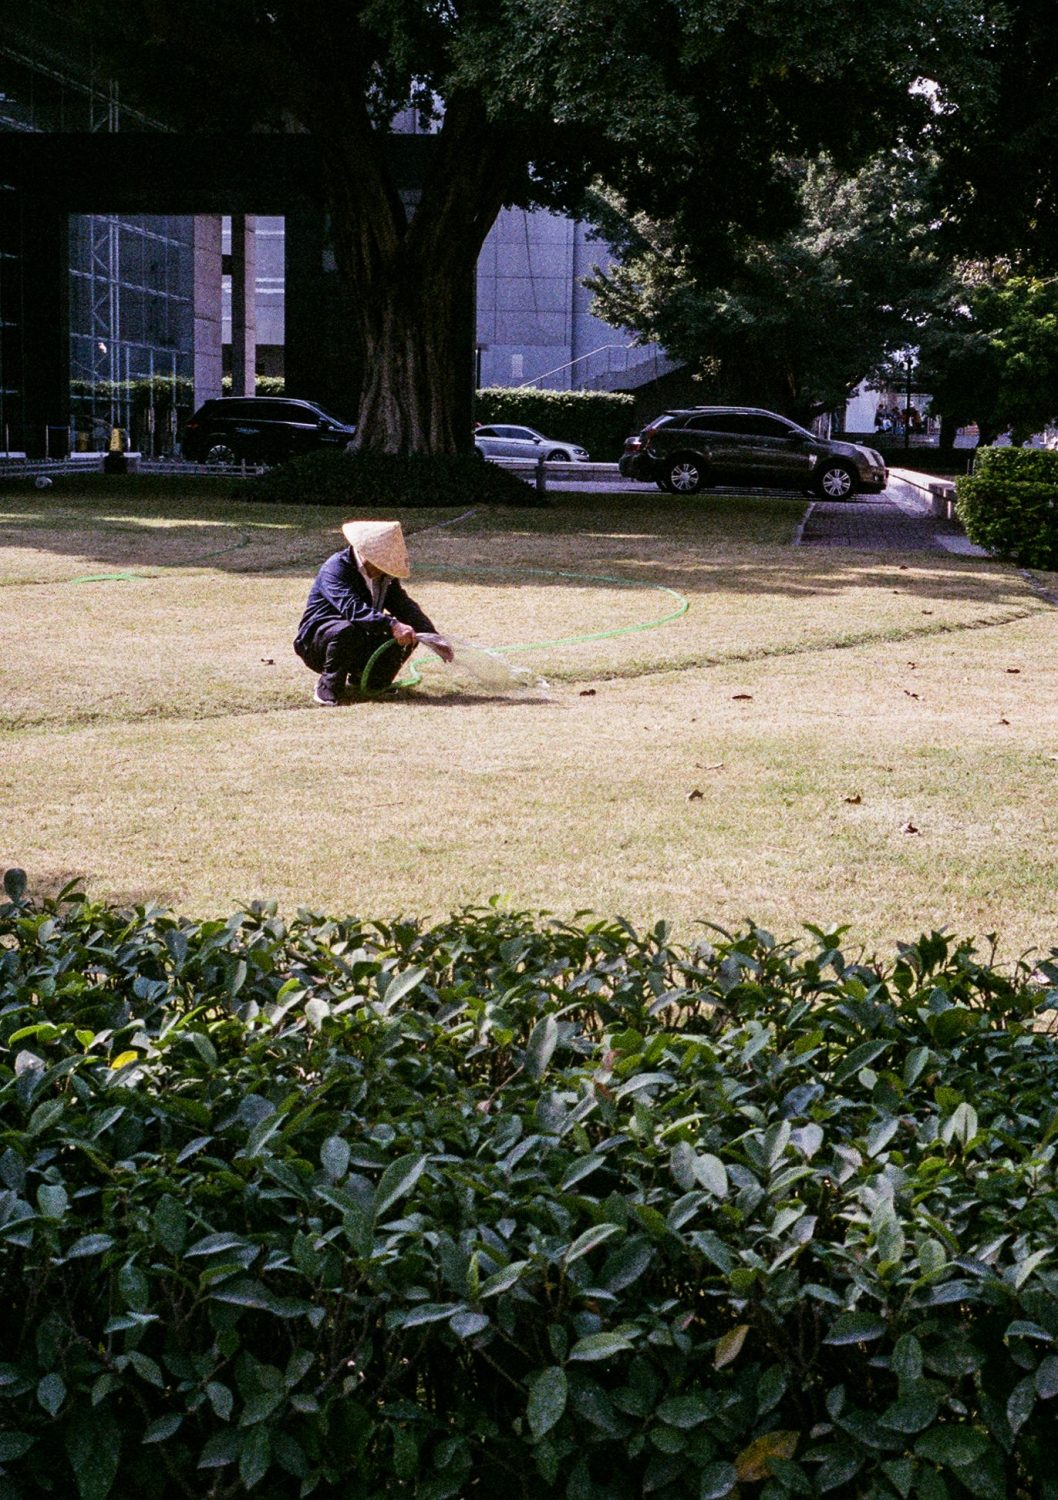 Person crouching on grass (Pic: Jay SE1)